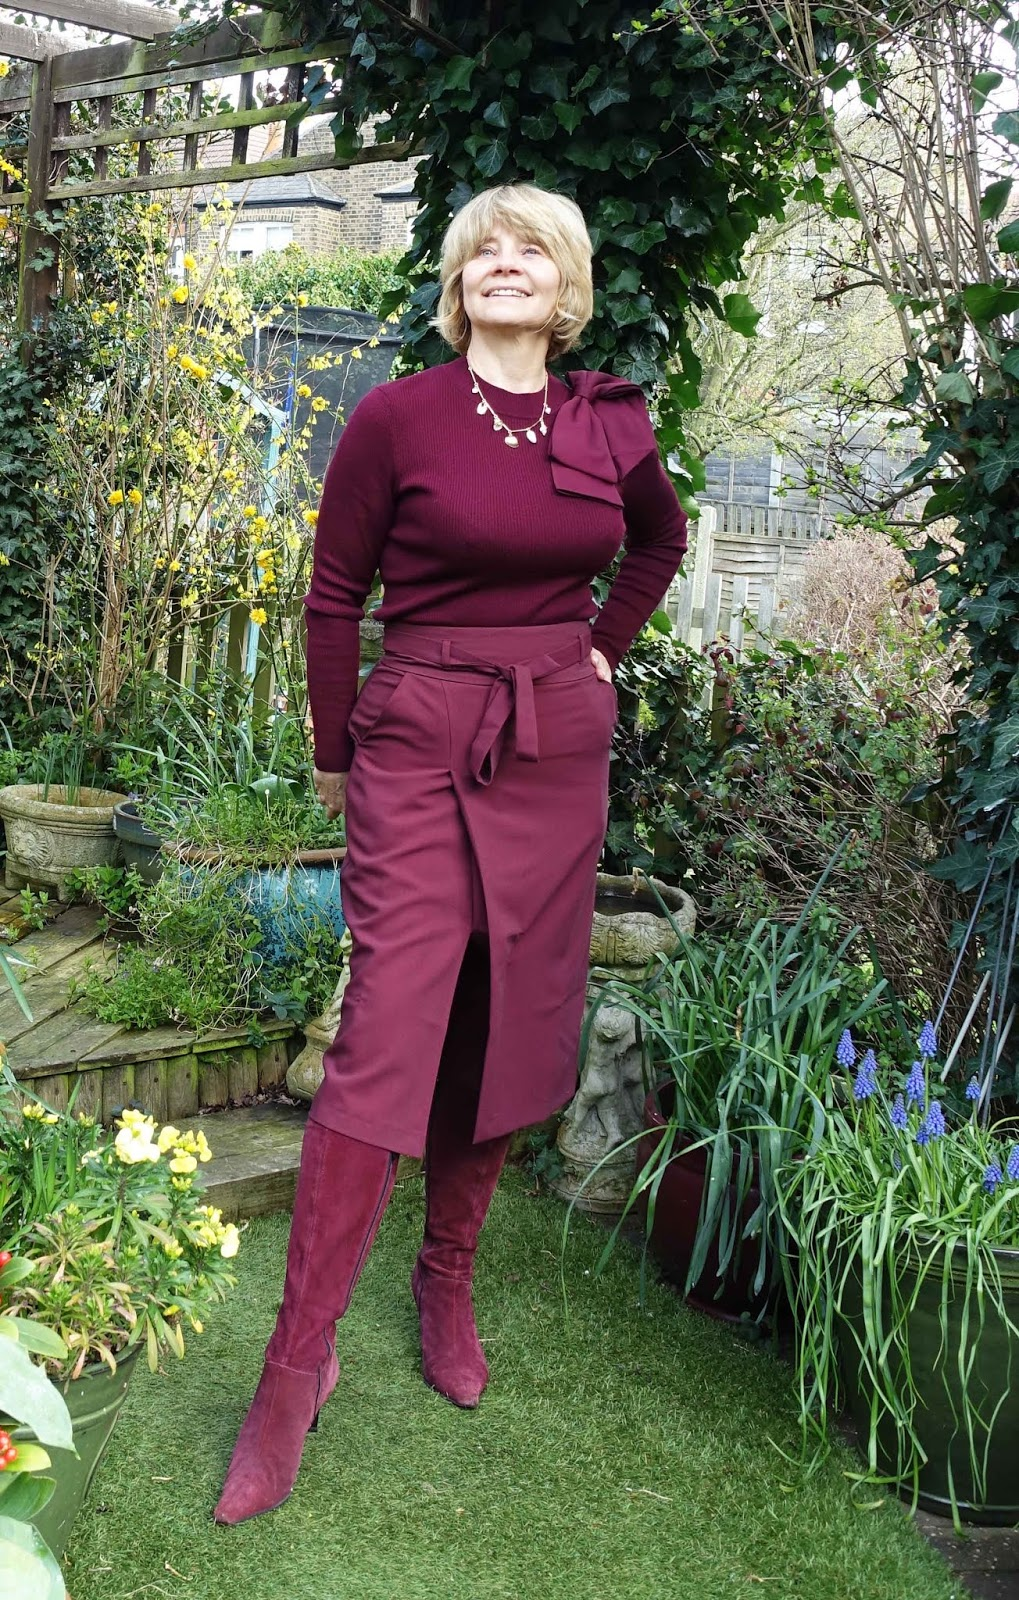 A monochrome outfit in burgundy worn by over-50s blogger Gail Hanlon from Is This Mutton?